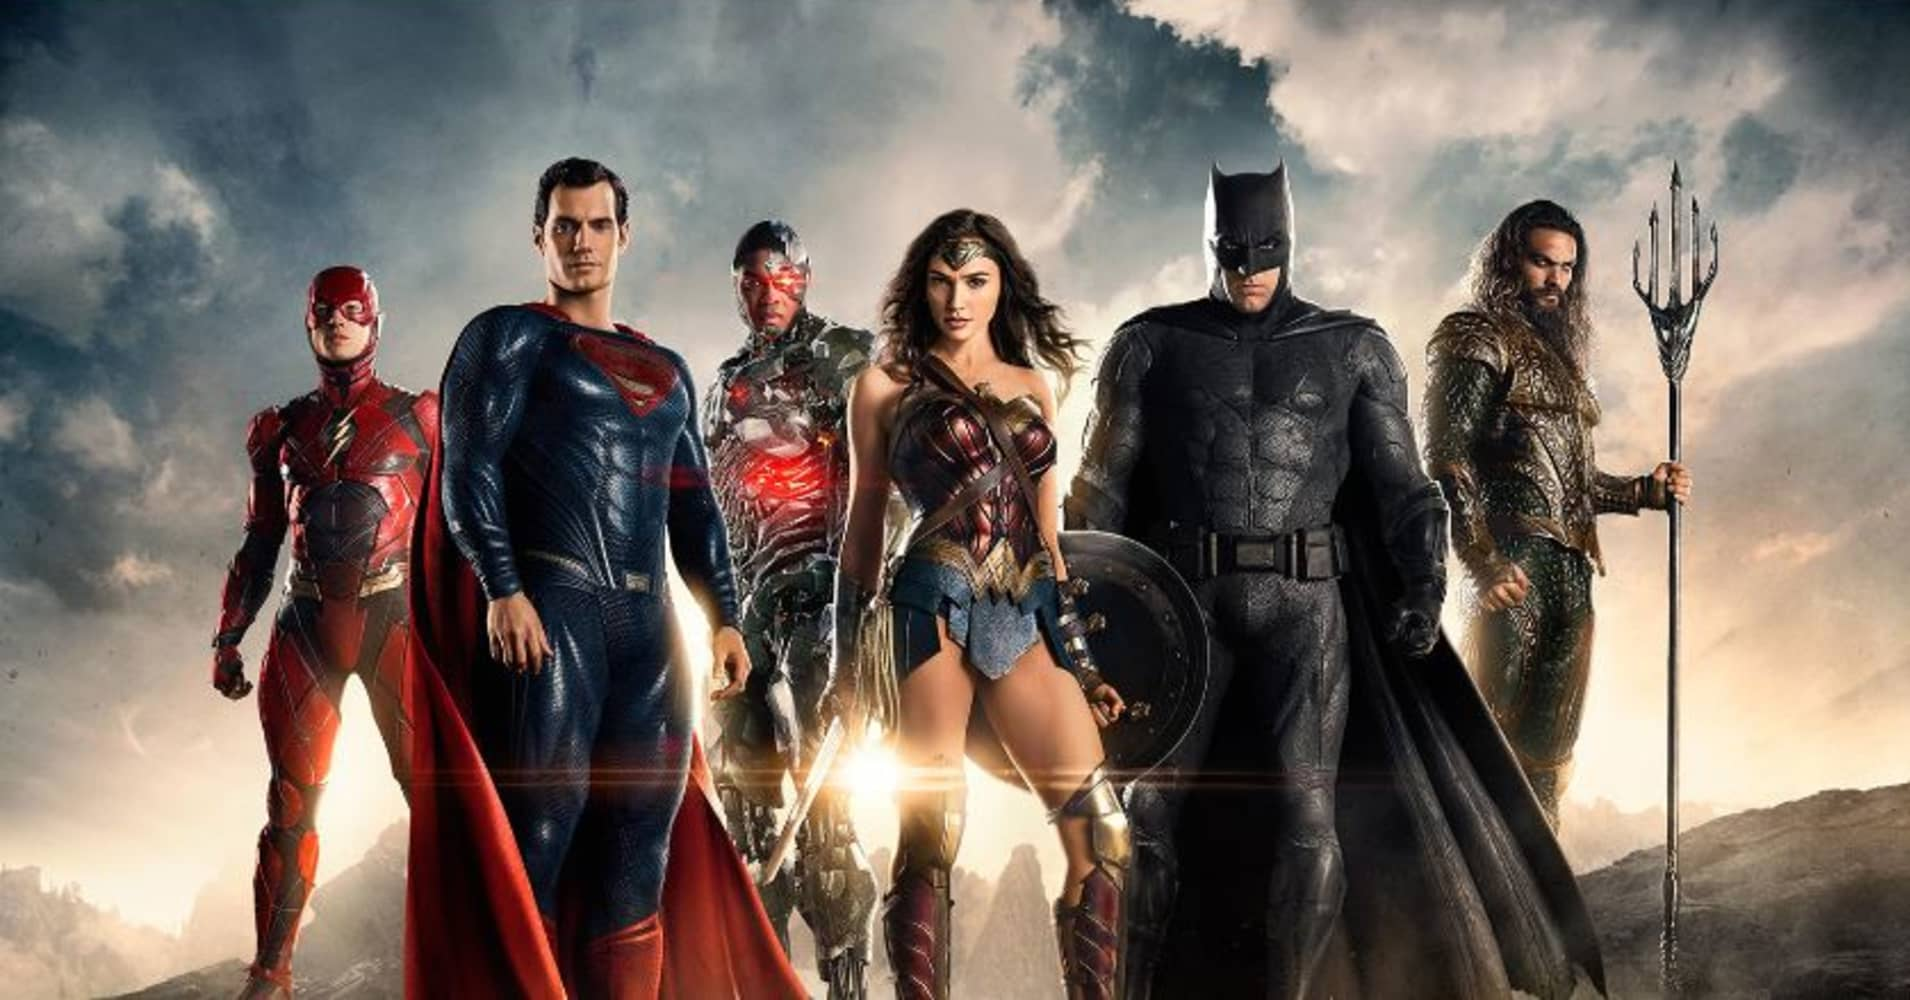 Warner Bros.' DC films are no longer trying to be Marvel, and that's a good thing